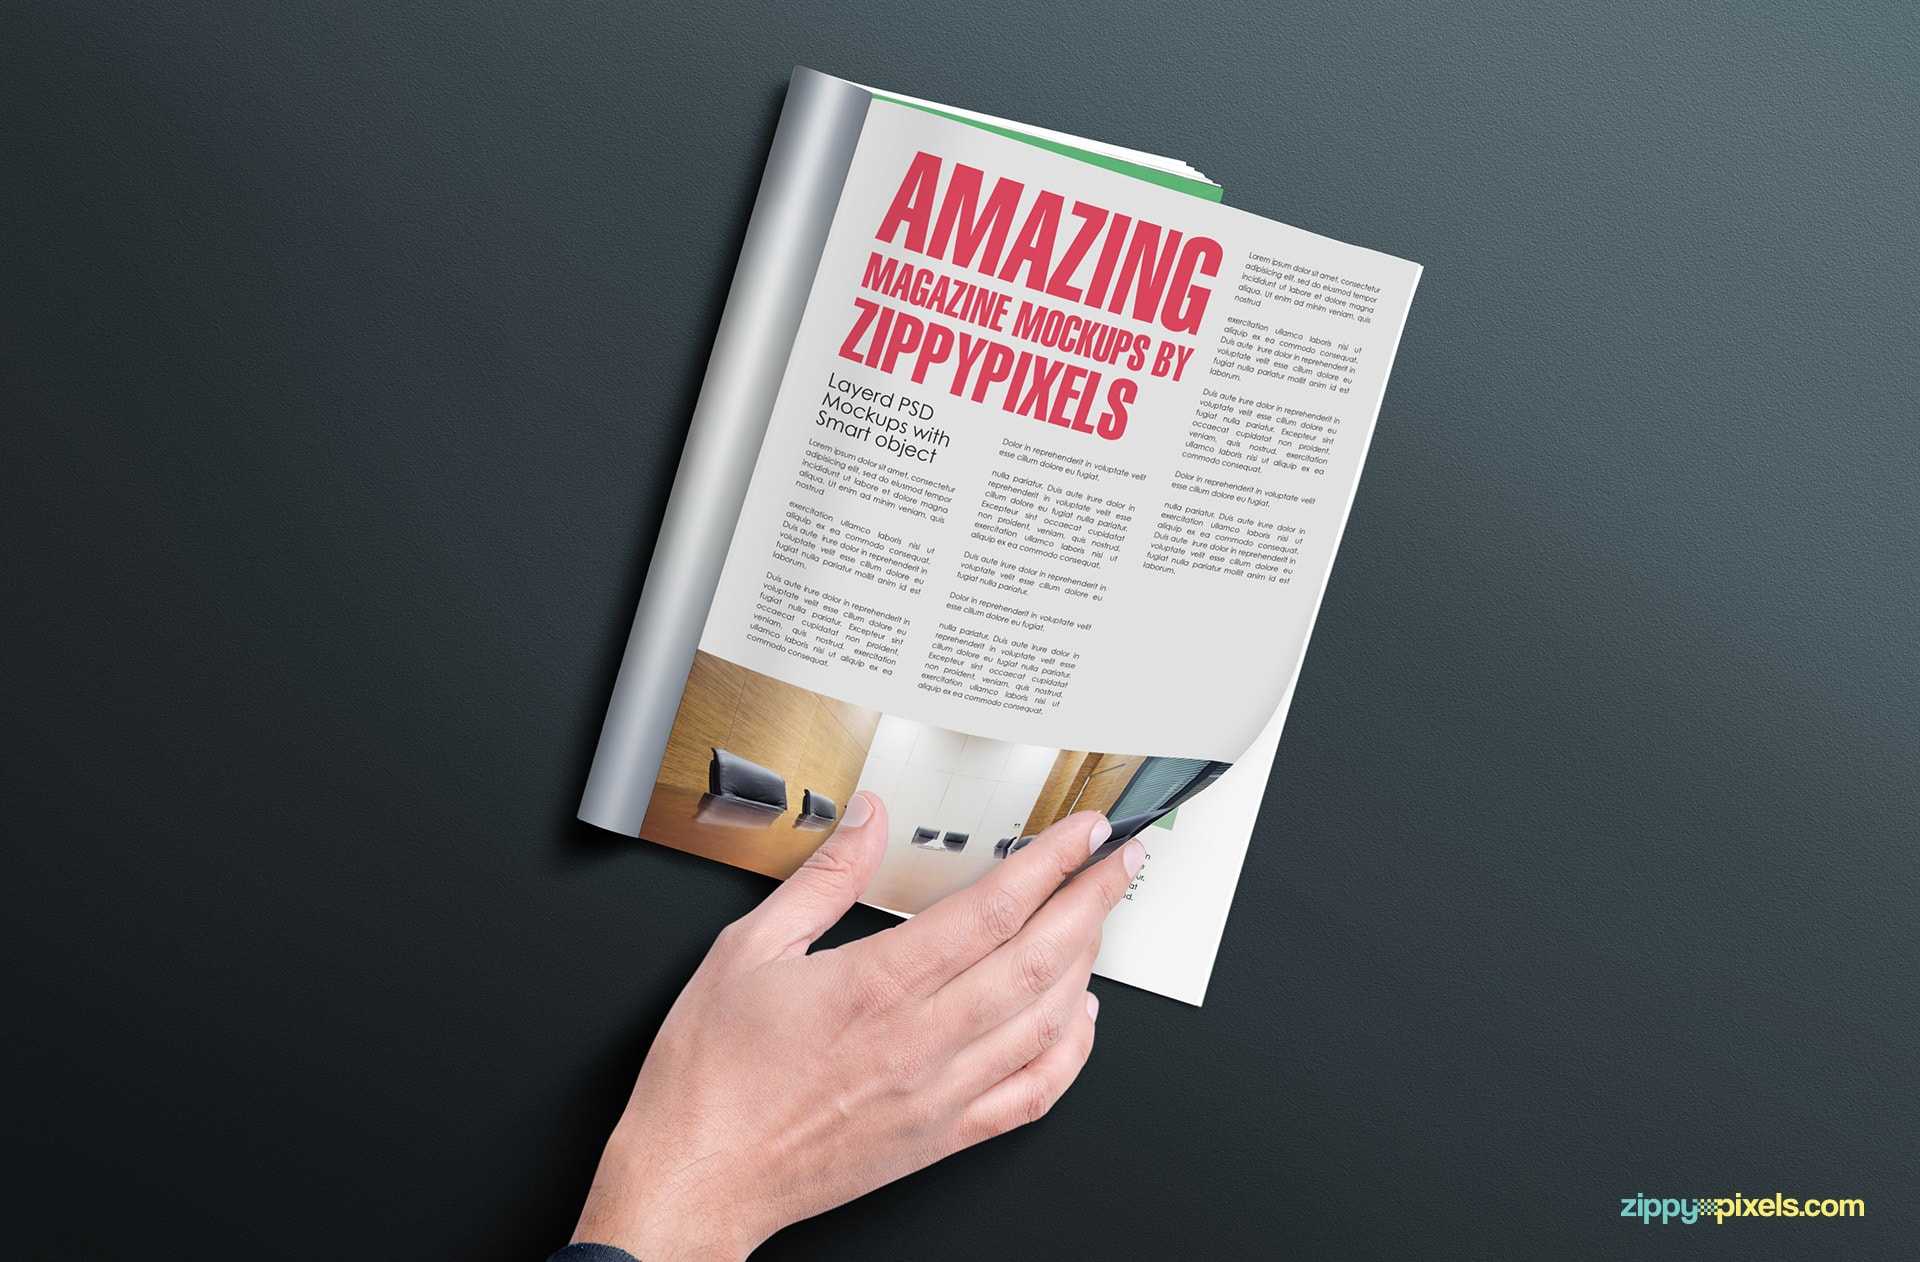 high-resolution magazine mockup in multiple views